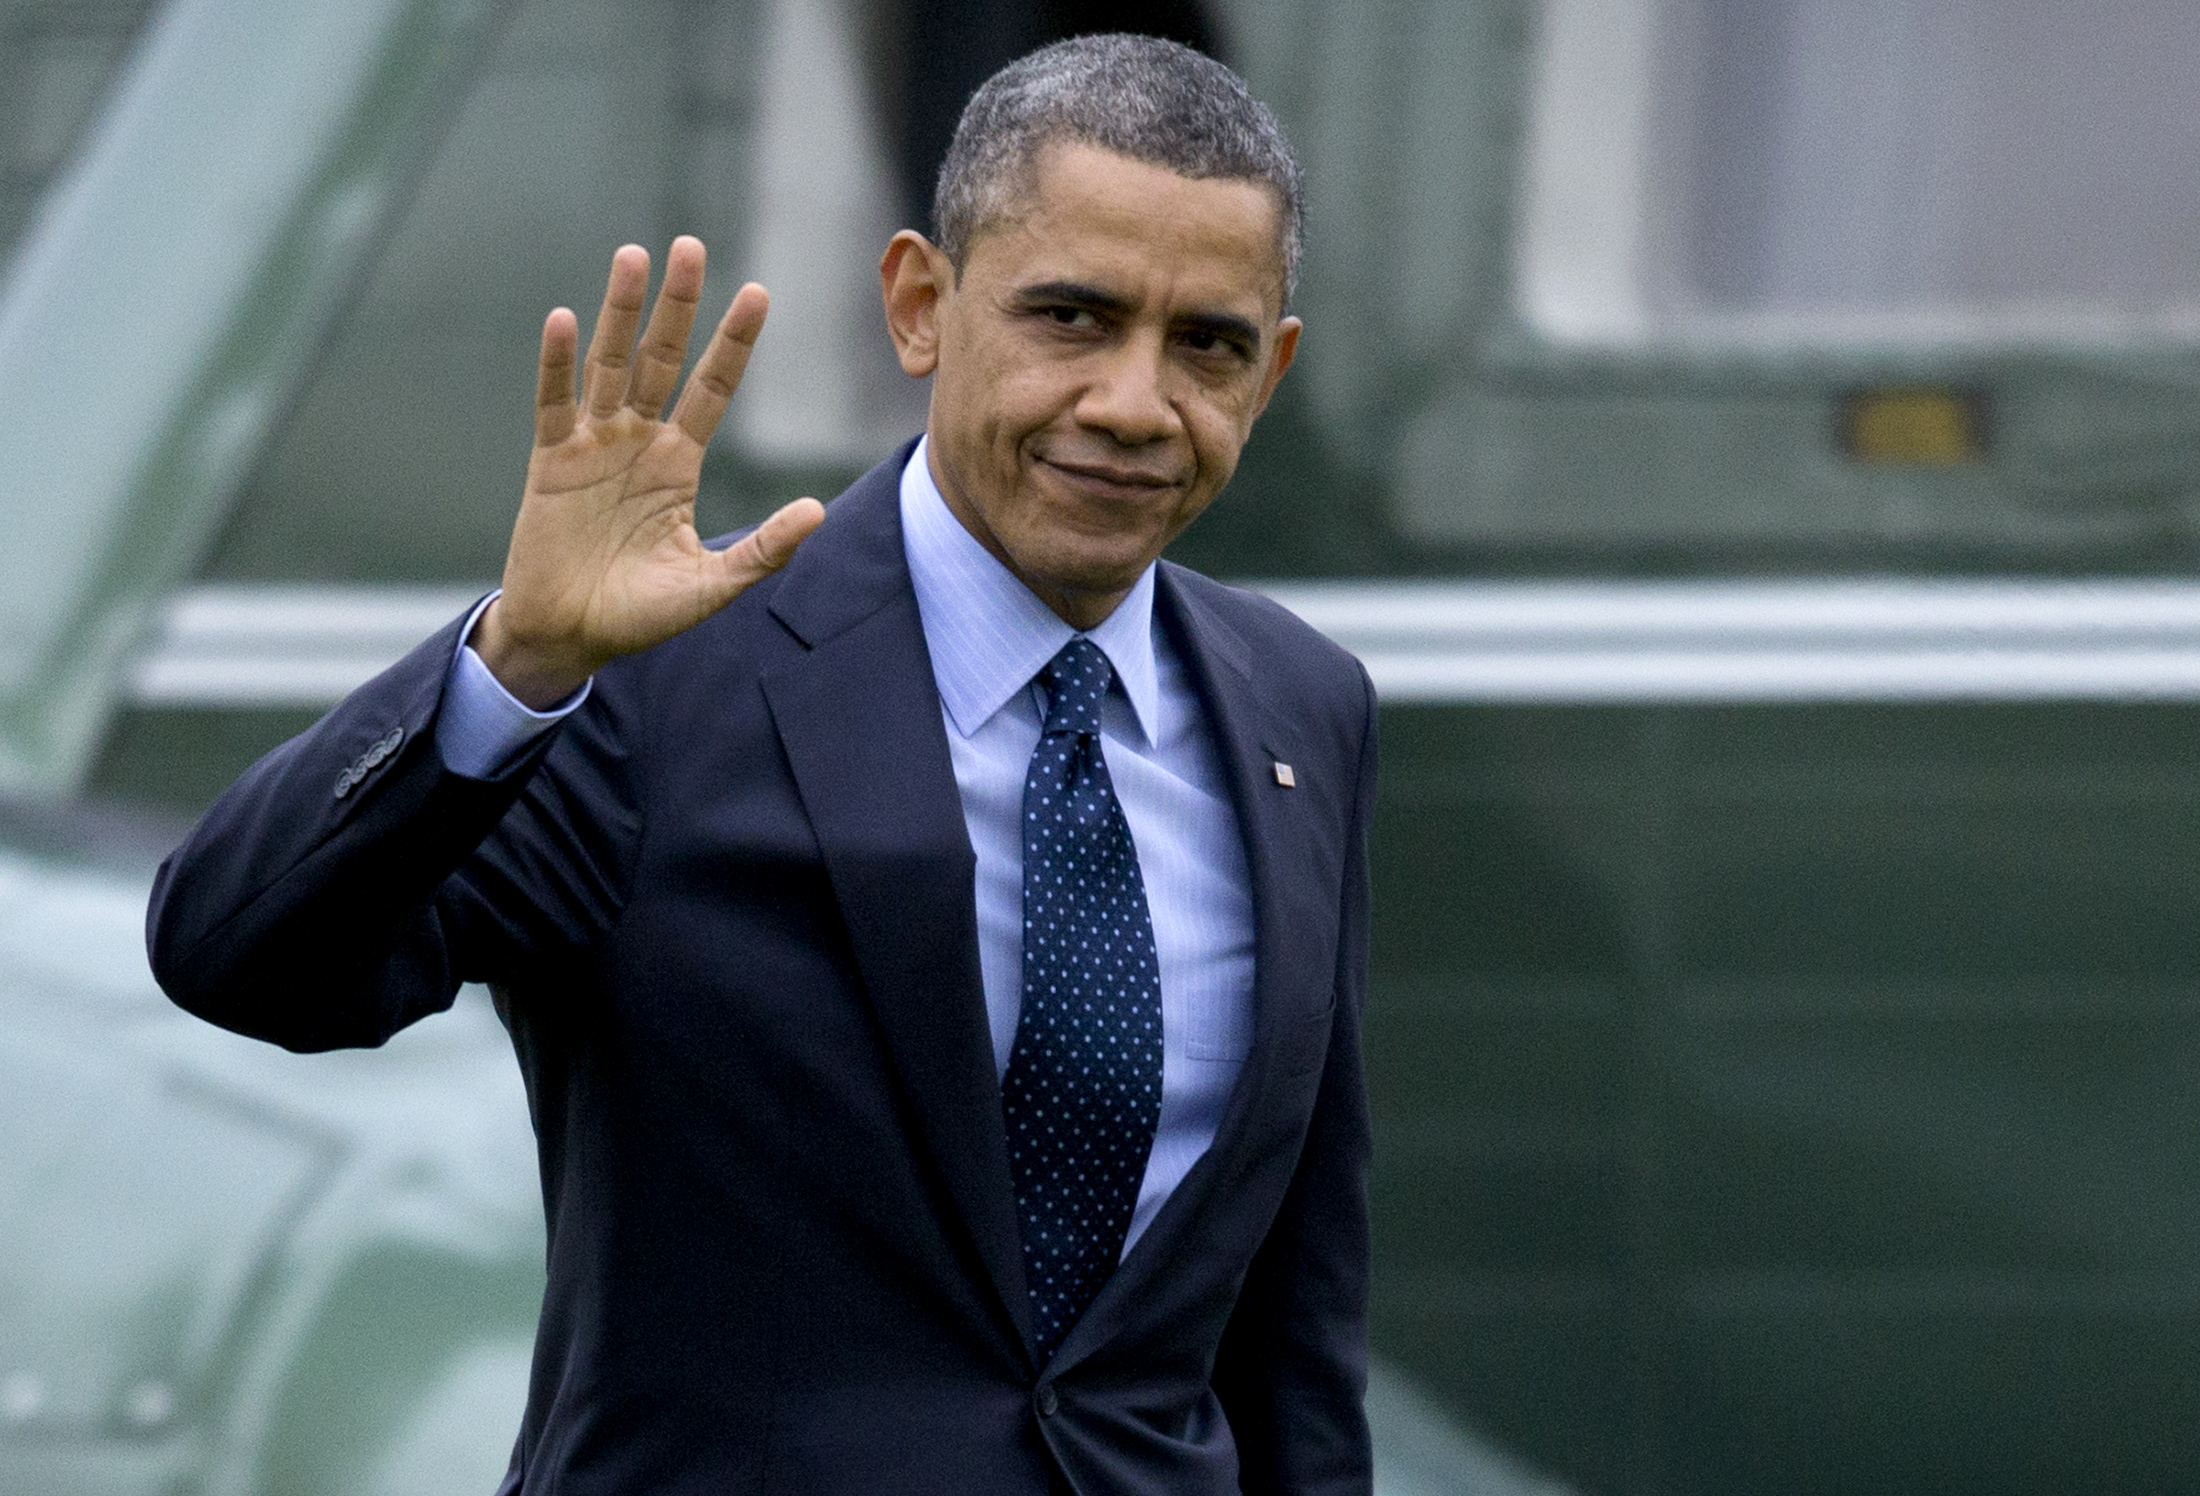 Barack Obama vows to deliver gun controls as Newtown funerals continue